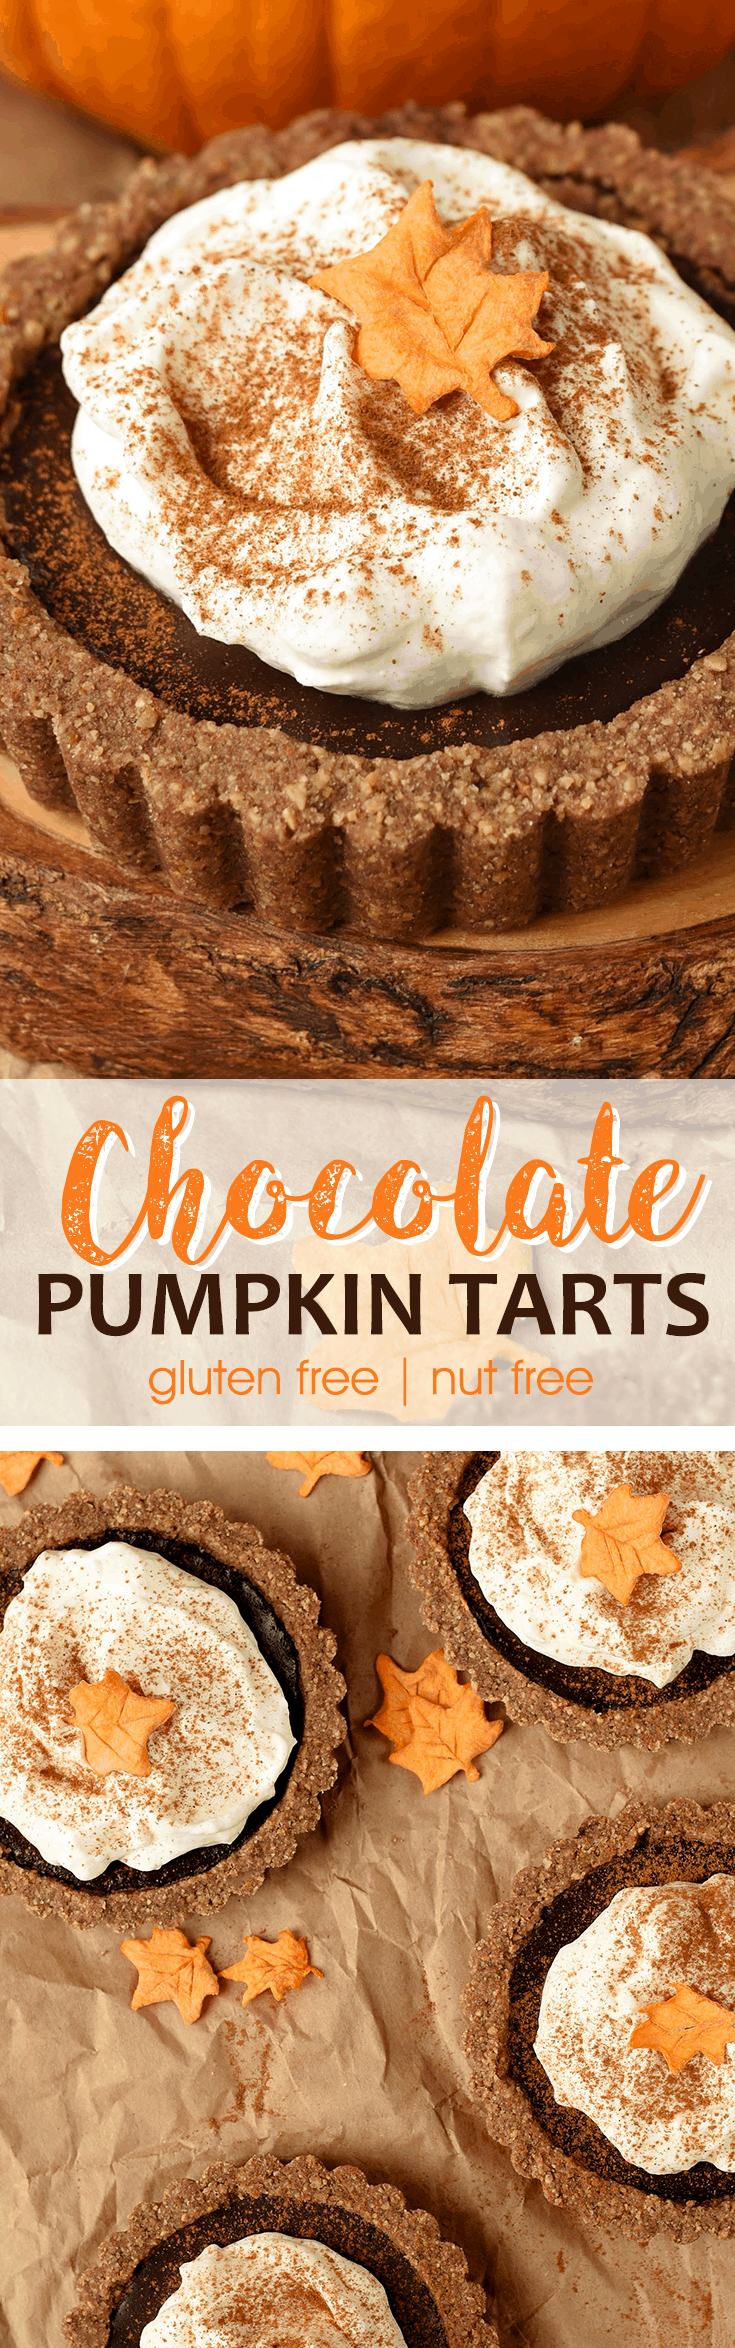 Pumpkin Chocolate Tarts with Pepita Crust are a delicious option for gluten-free, nut-free dinner guests this holiday season! #Thanksgiving #chocolate #pumpkin